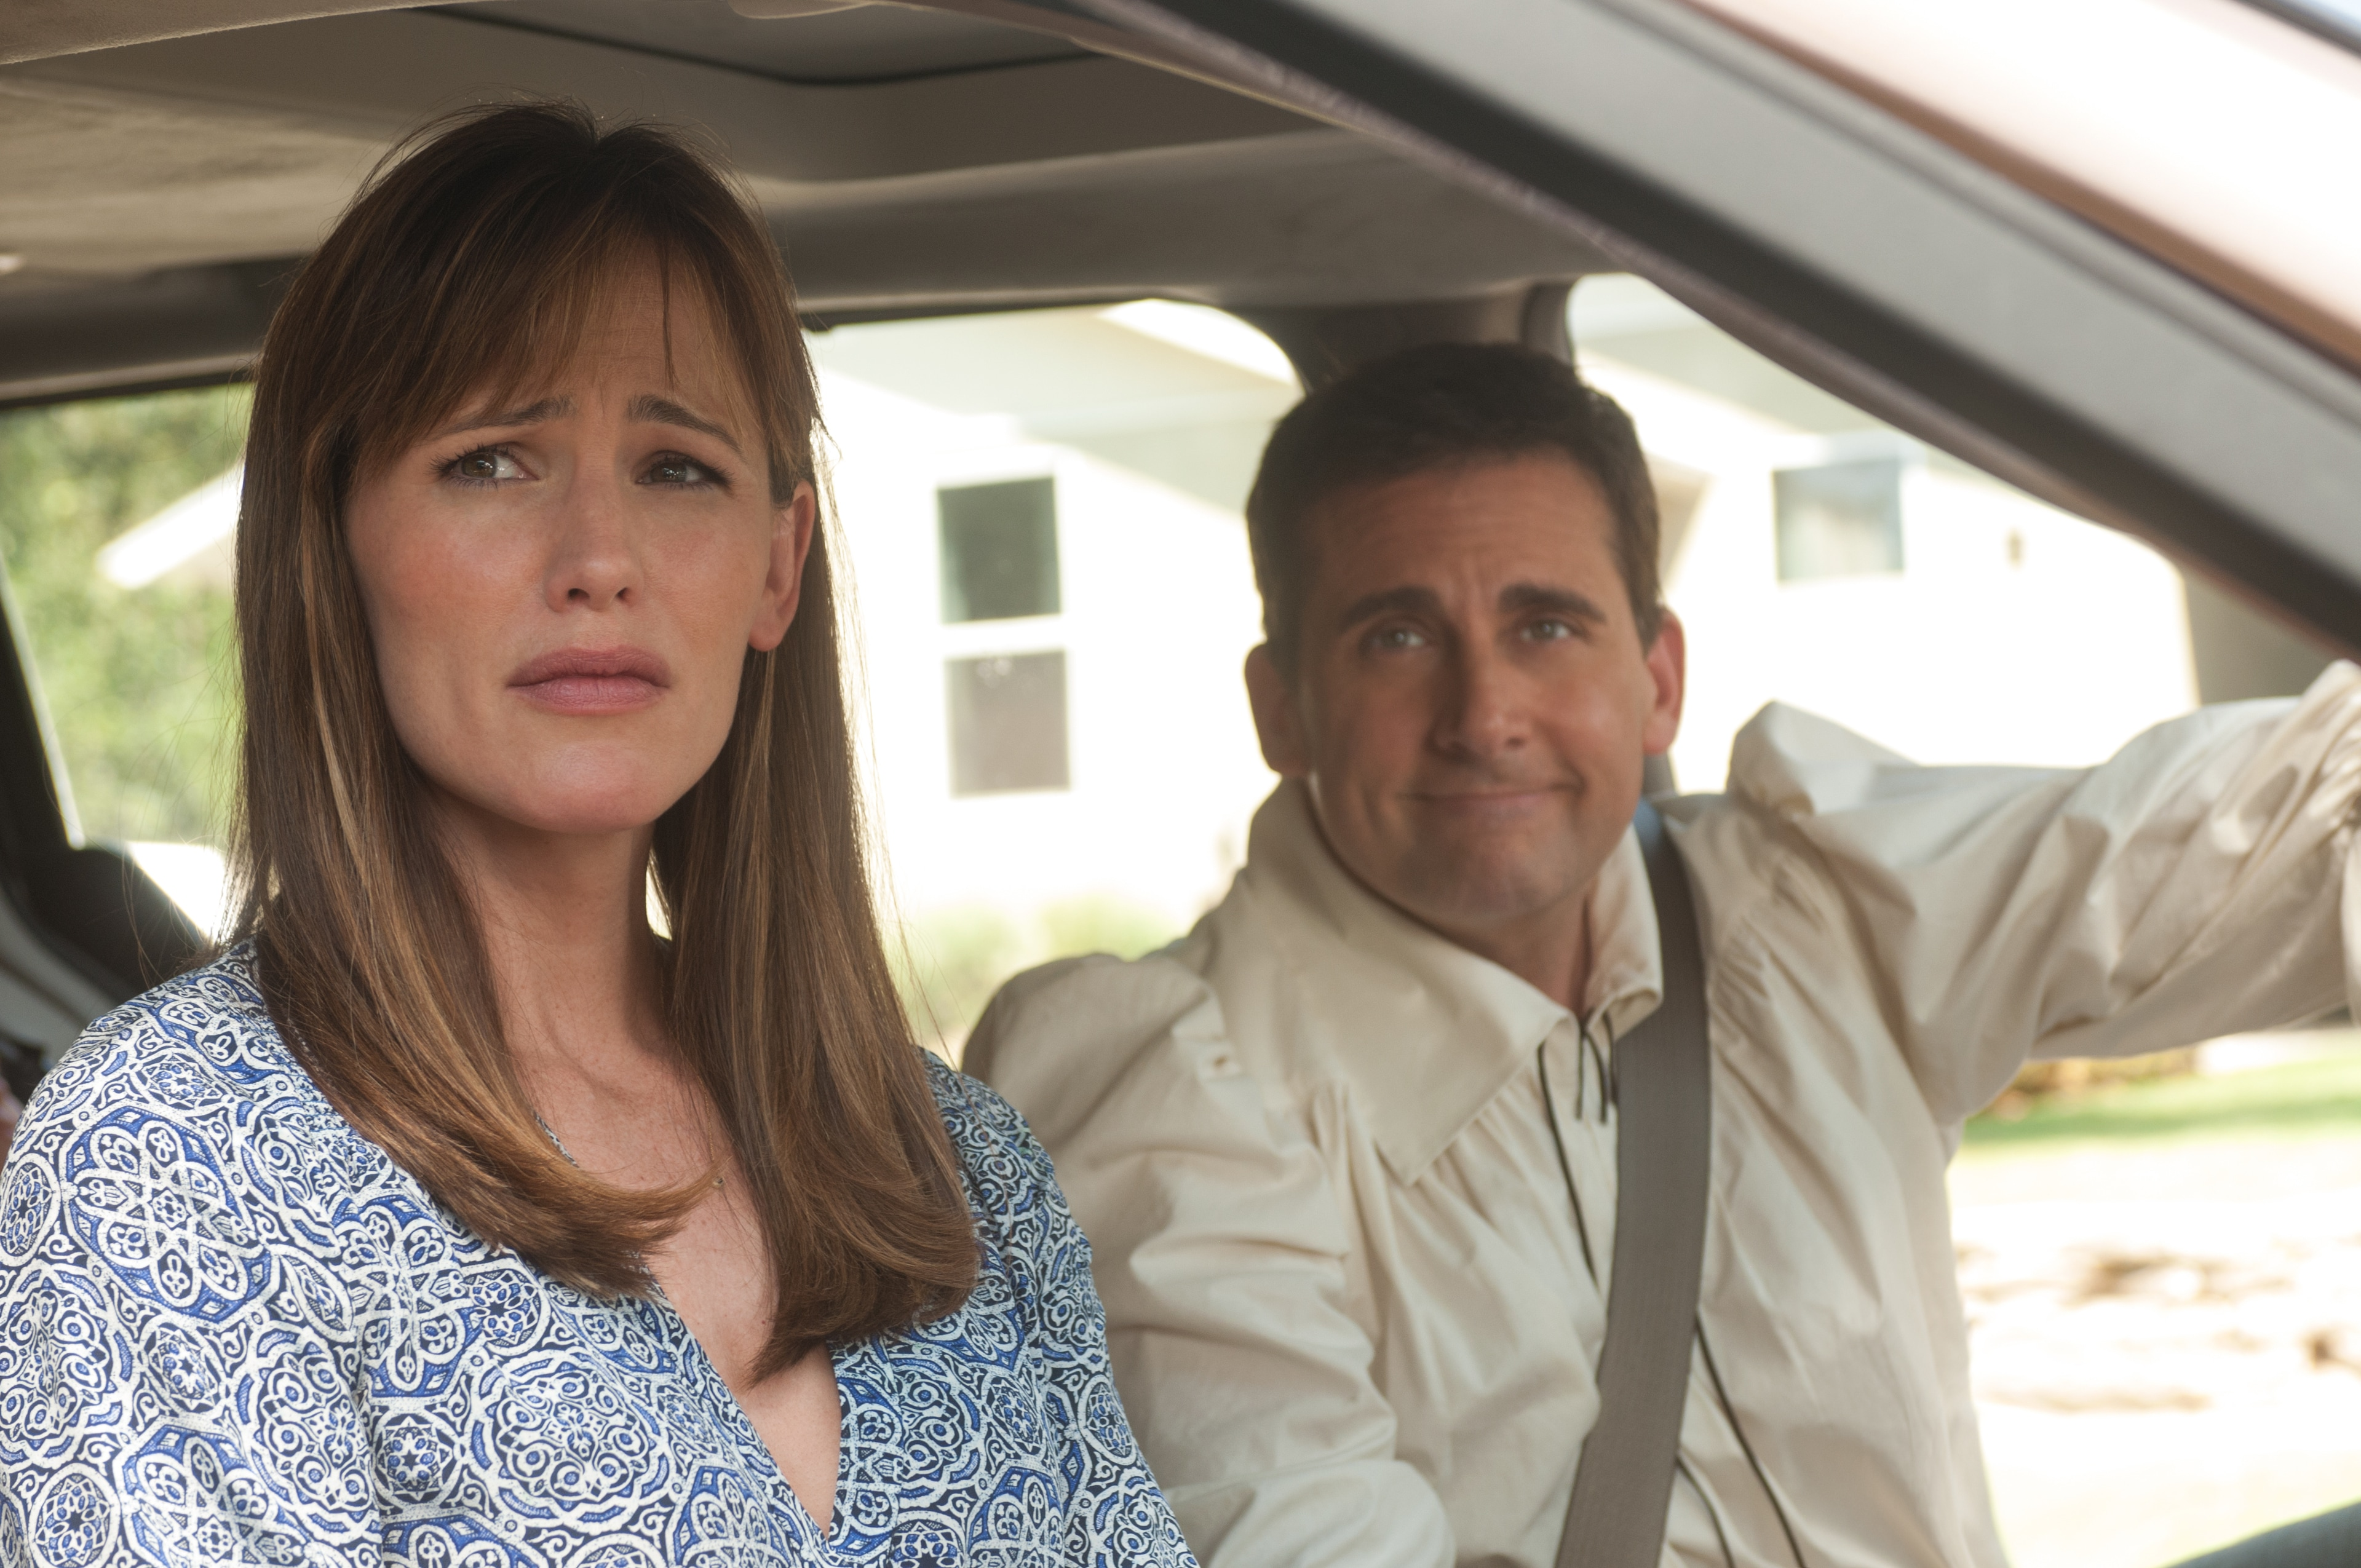 Kelly Cooper played by Jennifer Garner  and Ben Cooper played by Steve Carrell  in a car